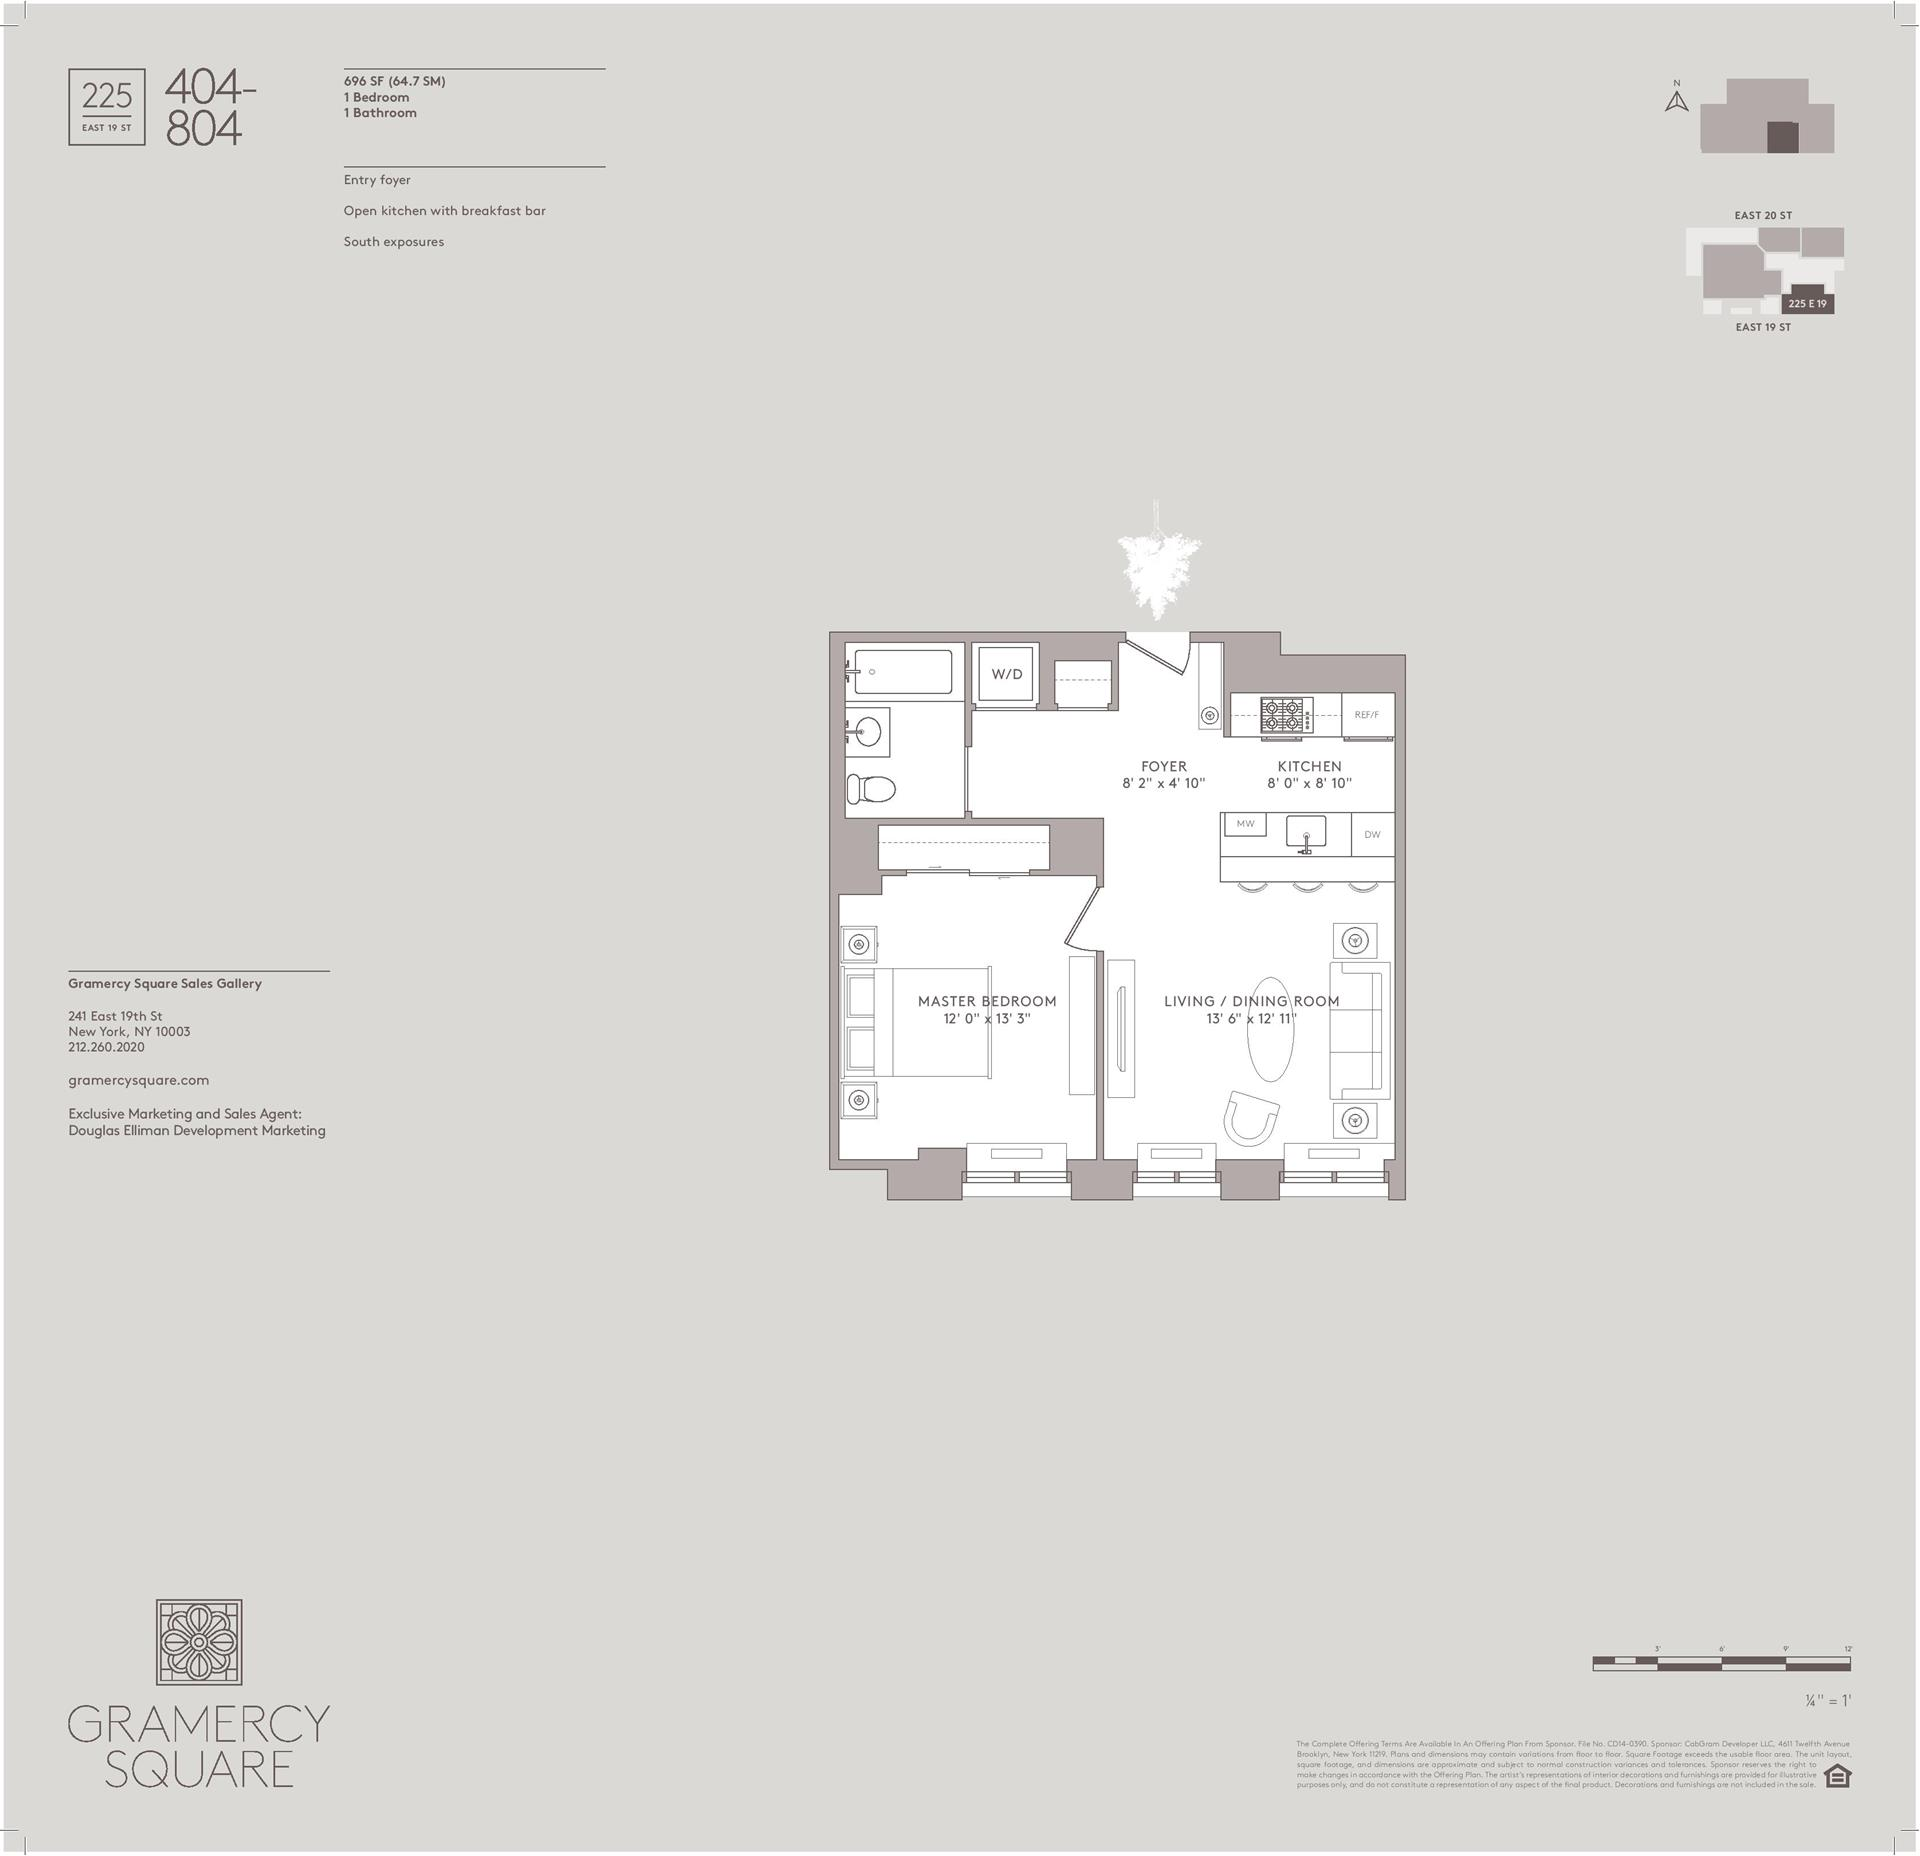 Floor plan of Gramercy Square, 225 East 19th St, 604 - Gramercy - Union Square, New York